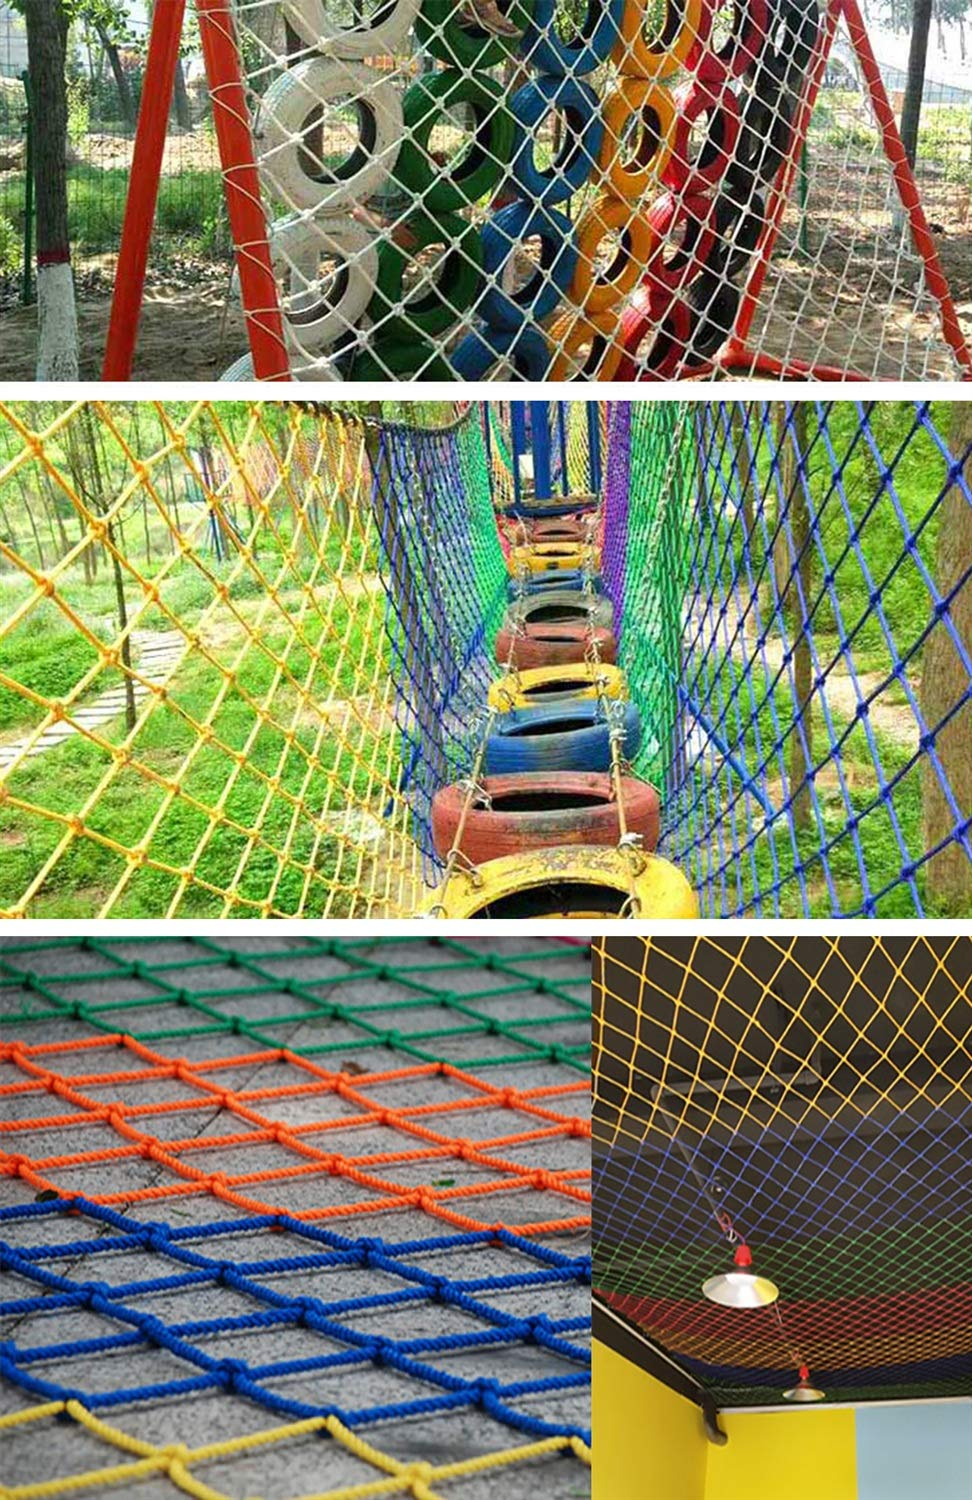 Blue Outdoor Child safety net protective net balcony stairs anti-fall net kindergarten color decorative net fence network Width 1/4M Length 1M /9M Hand braided traditional structure (Size : 4m*5m)  [Protect children's safety]: Many children fall from the building, let us understand that the safety of children can not be ignored. [Polyester knotless woven mesh]: The mesh surface has large pulling force, and the double needle has no knot woven mesh hole, so that the mesh has stronger impact resistance. [wire diameter 10MM, mesh spacing 10CM]: Escort for baby safety.(Others available in our shop) 12